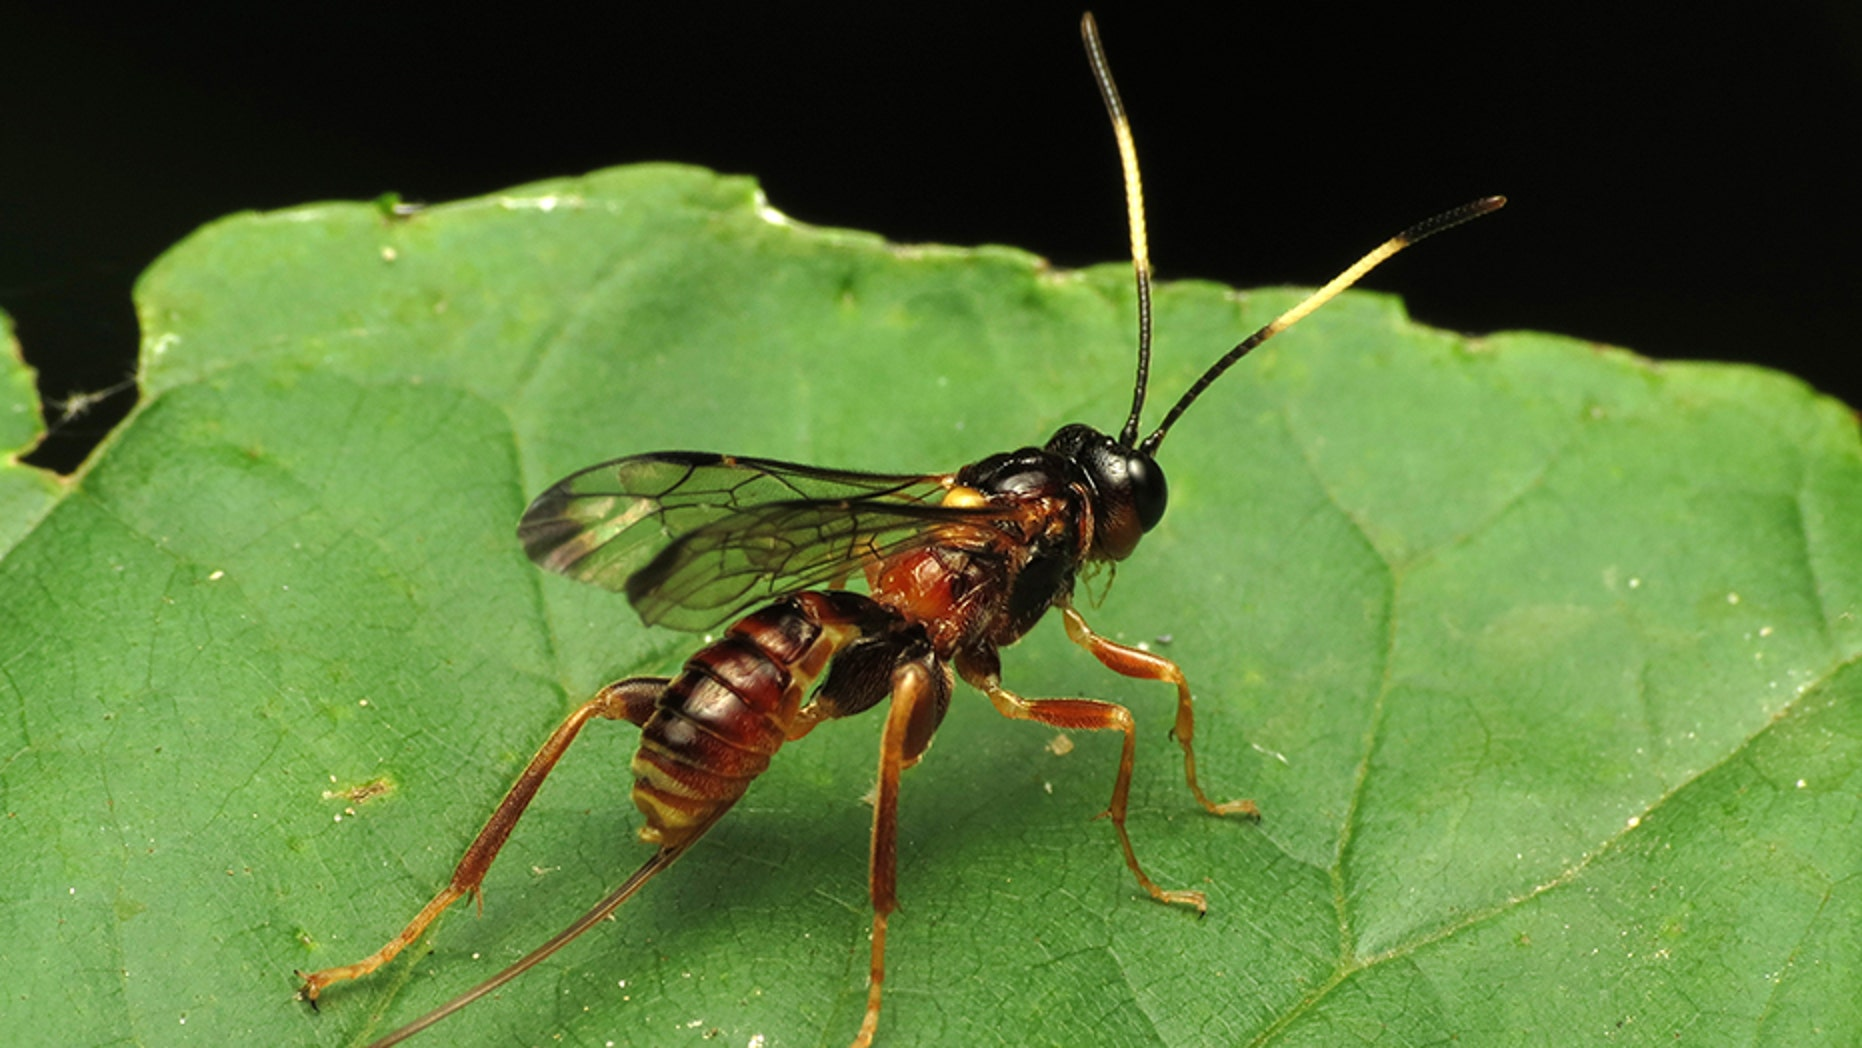 Parasitic wasp. (Credit: WikiMedia)